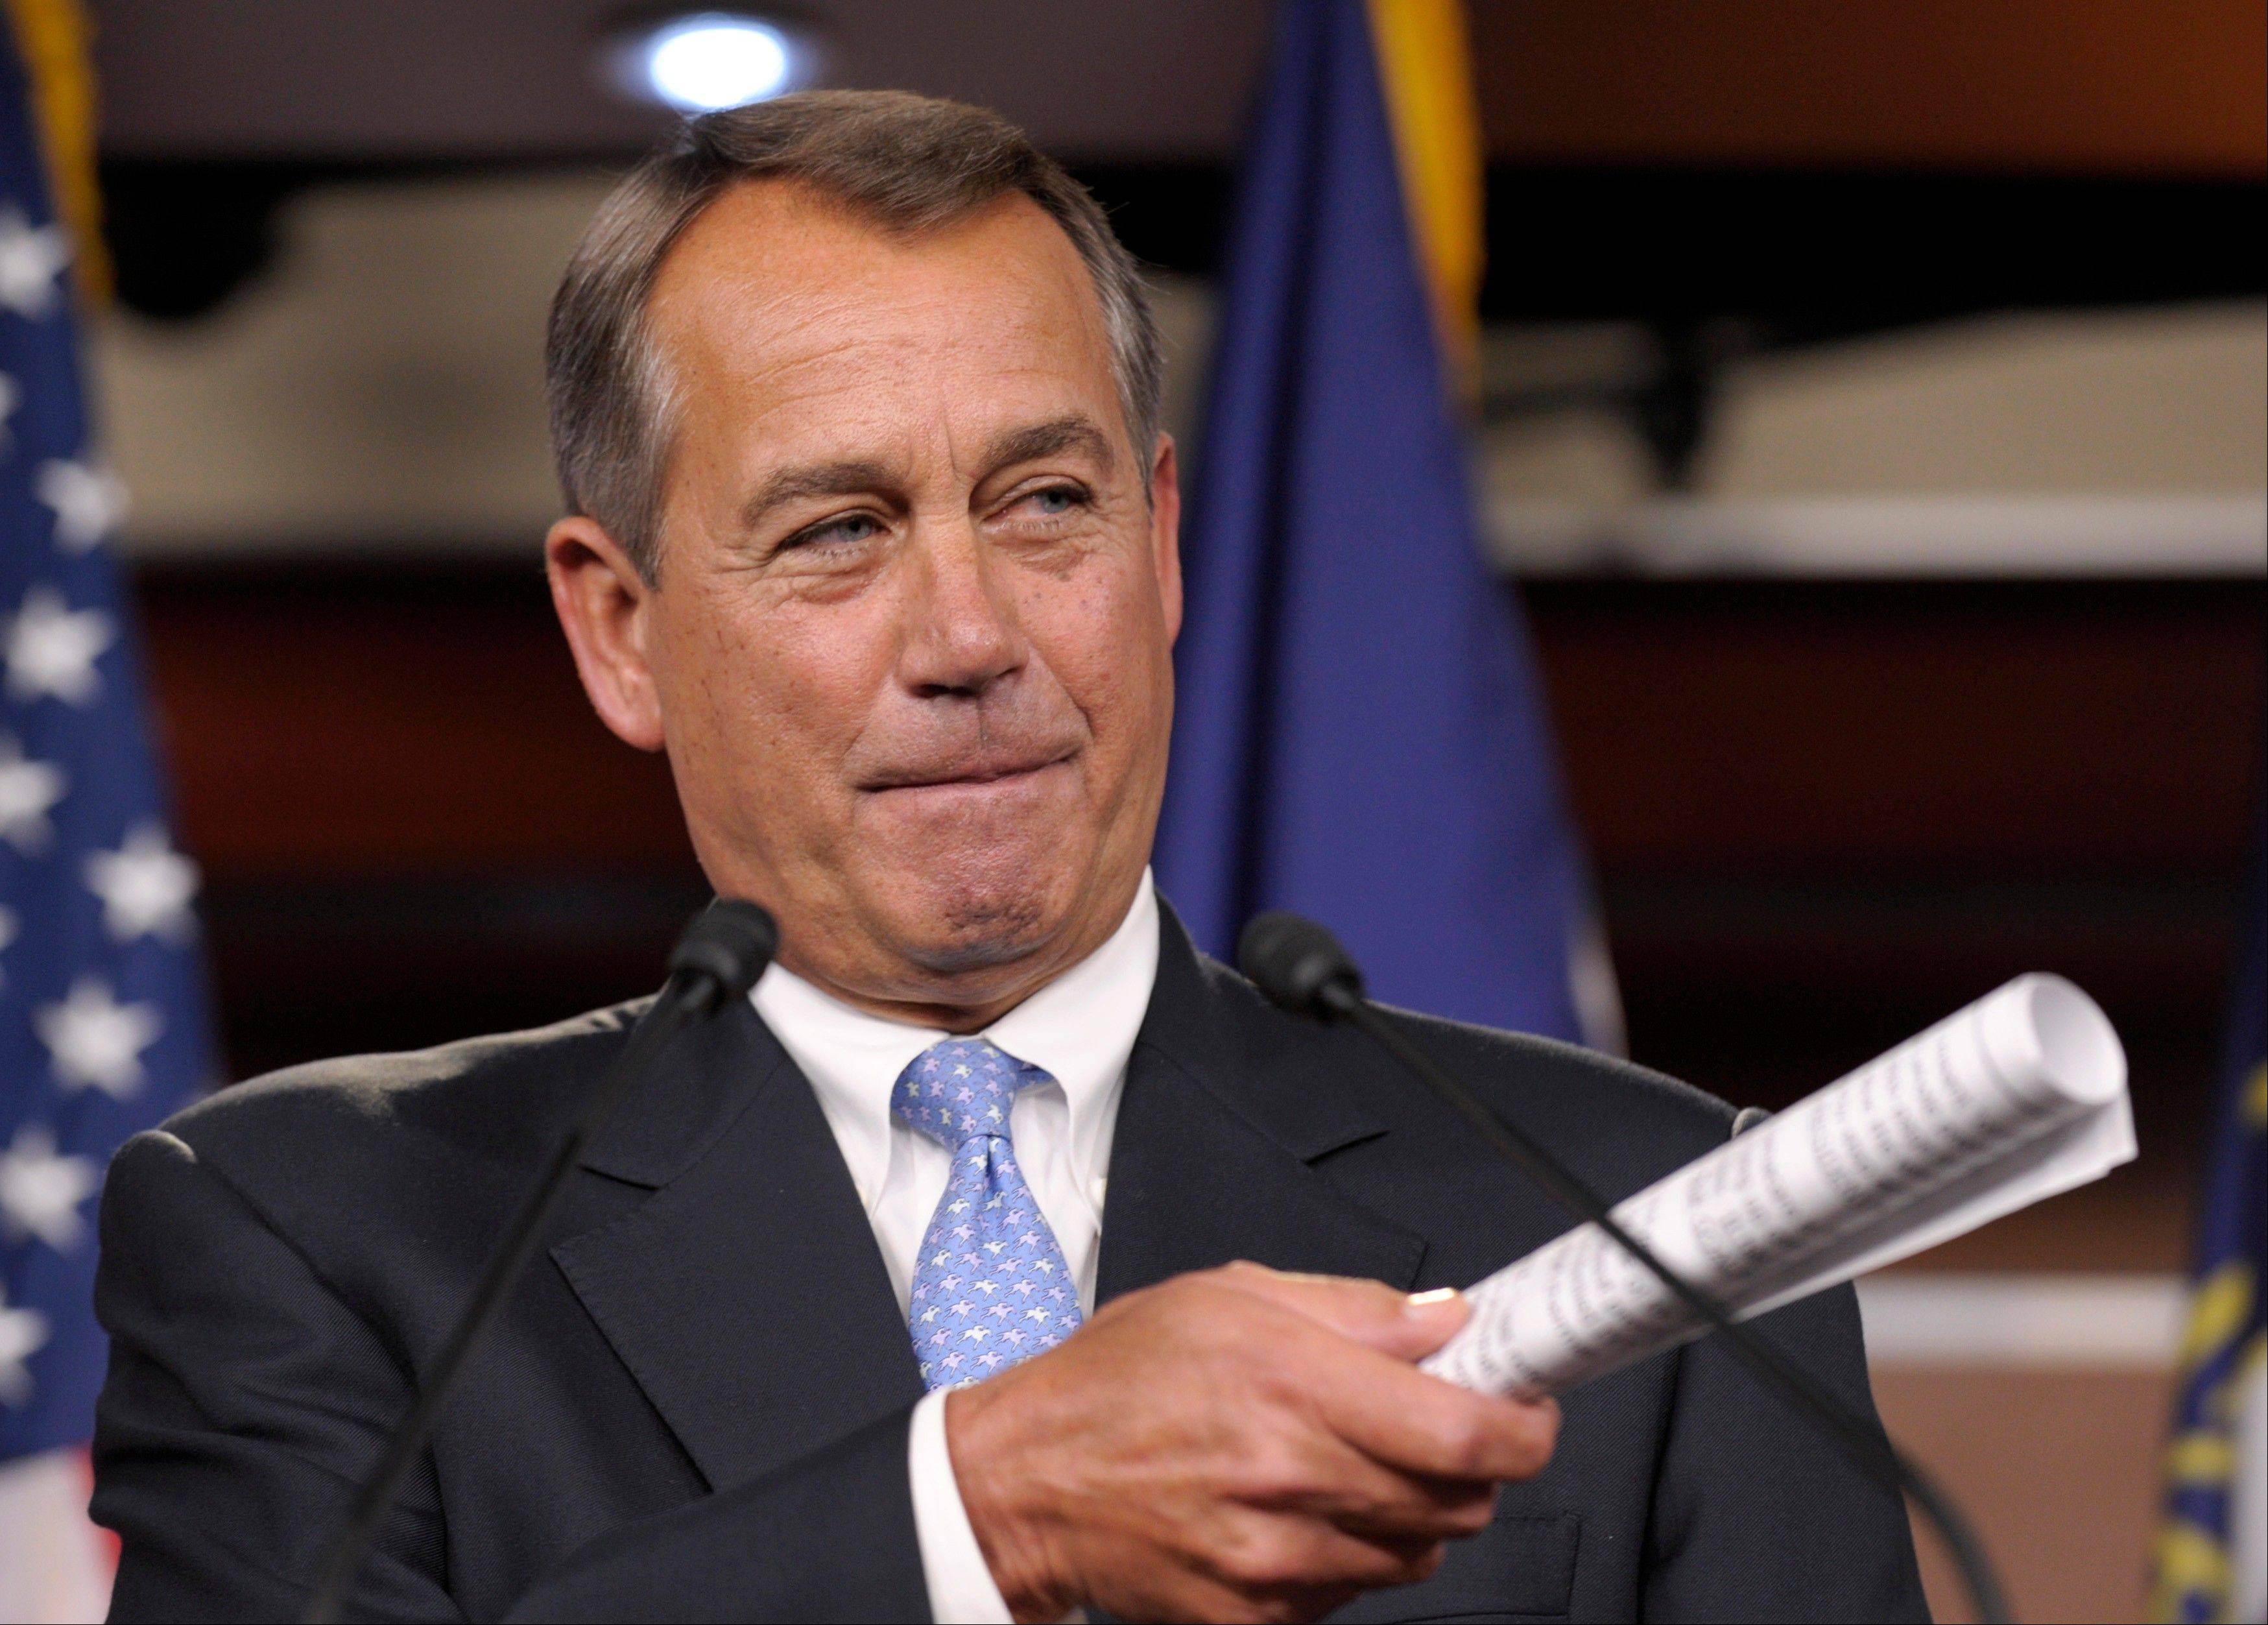 House Speaker John Boehner of Ohio gesturing during a news conference on Capitol Hill in Washington. It's entirely possible that lawmakers and the White House will reach a deal to avert an avalanche of tax increases and deep cuts in government programs before a Jan. 1 deadline.